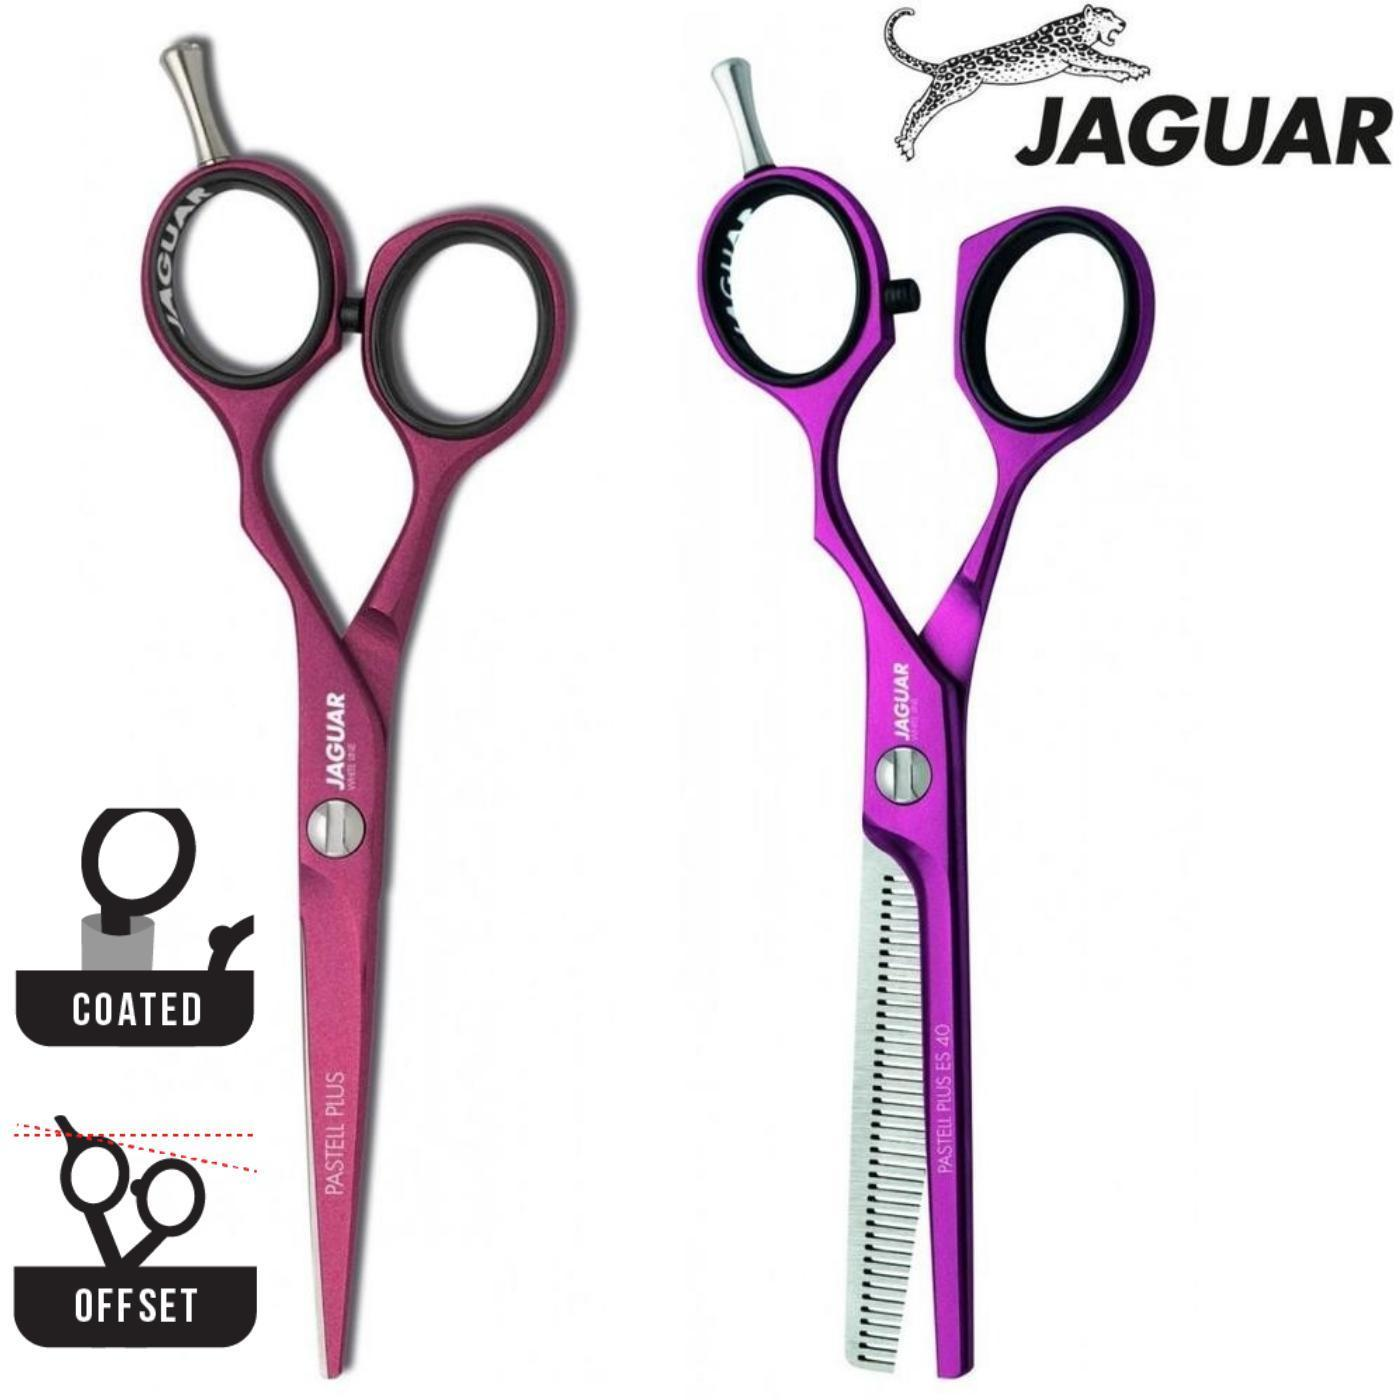 Jaguar Pastell Plus Candy Cutting & Thinning Set - Japan Scissors